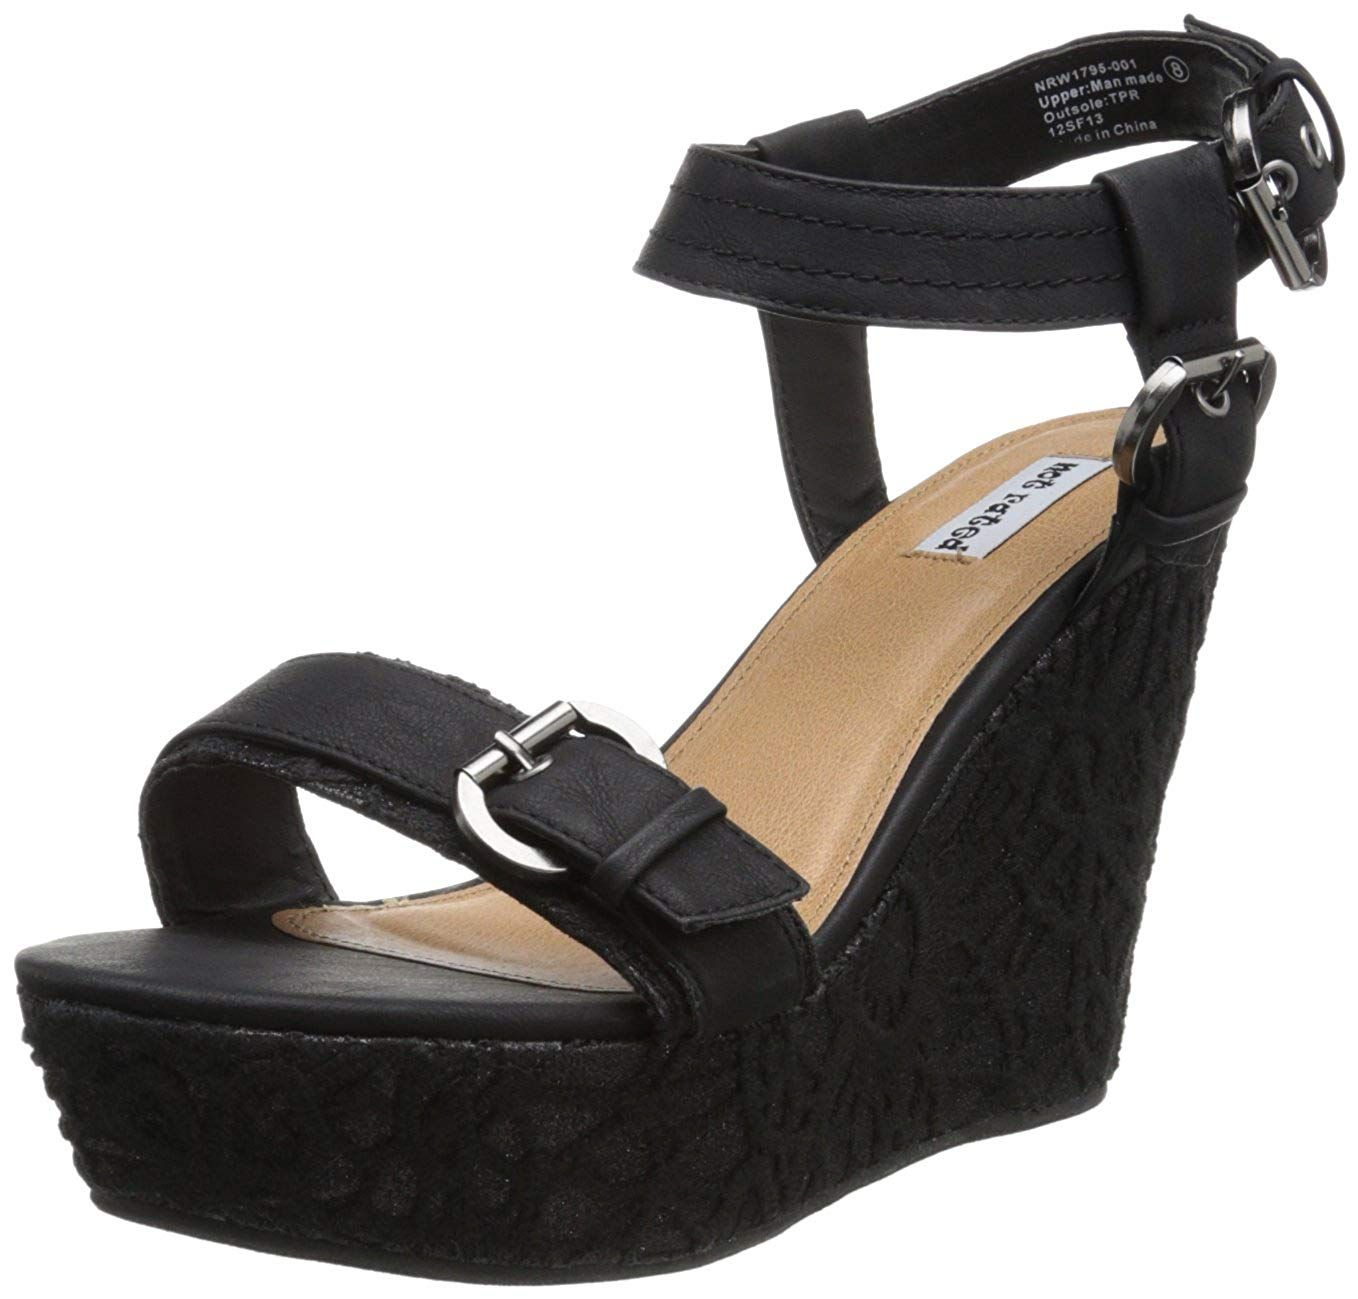 d695dd34d4a Not Rated Women s Swizzle Wedge Sandal -- Thanks a lot for having visited  our photograph. (This is an affiliate link)  womensplatformandwedgesandals